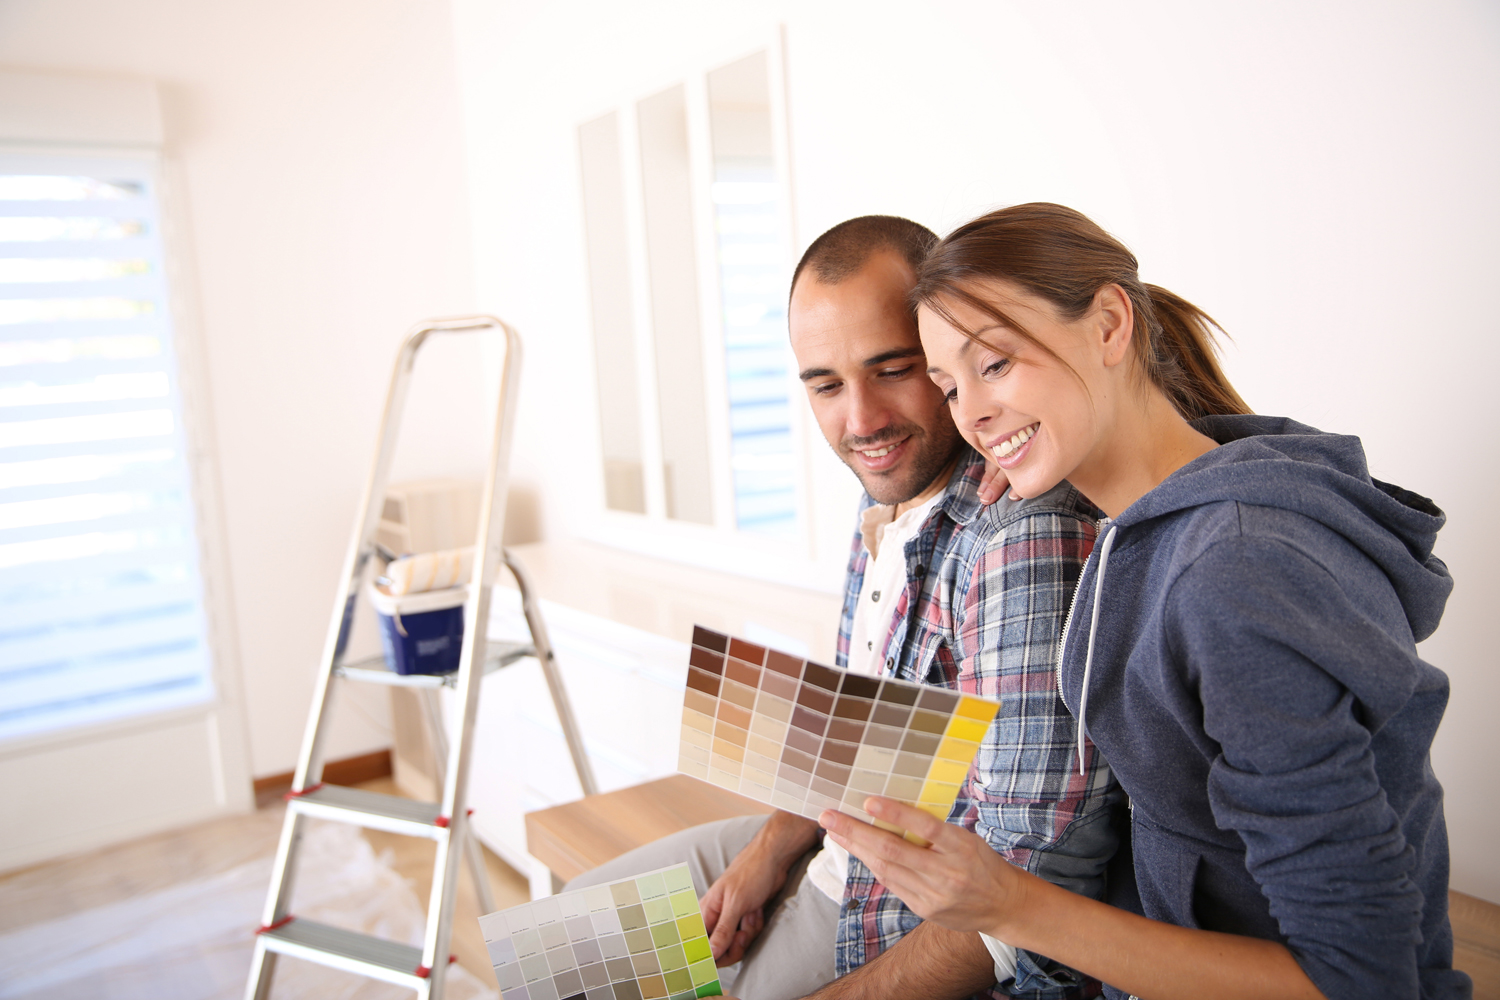 Tips to save money on home renovation without cutting corners